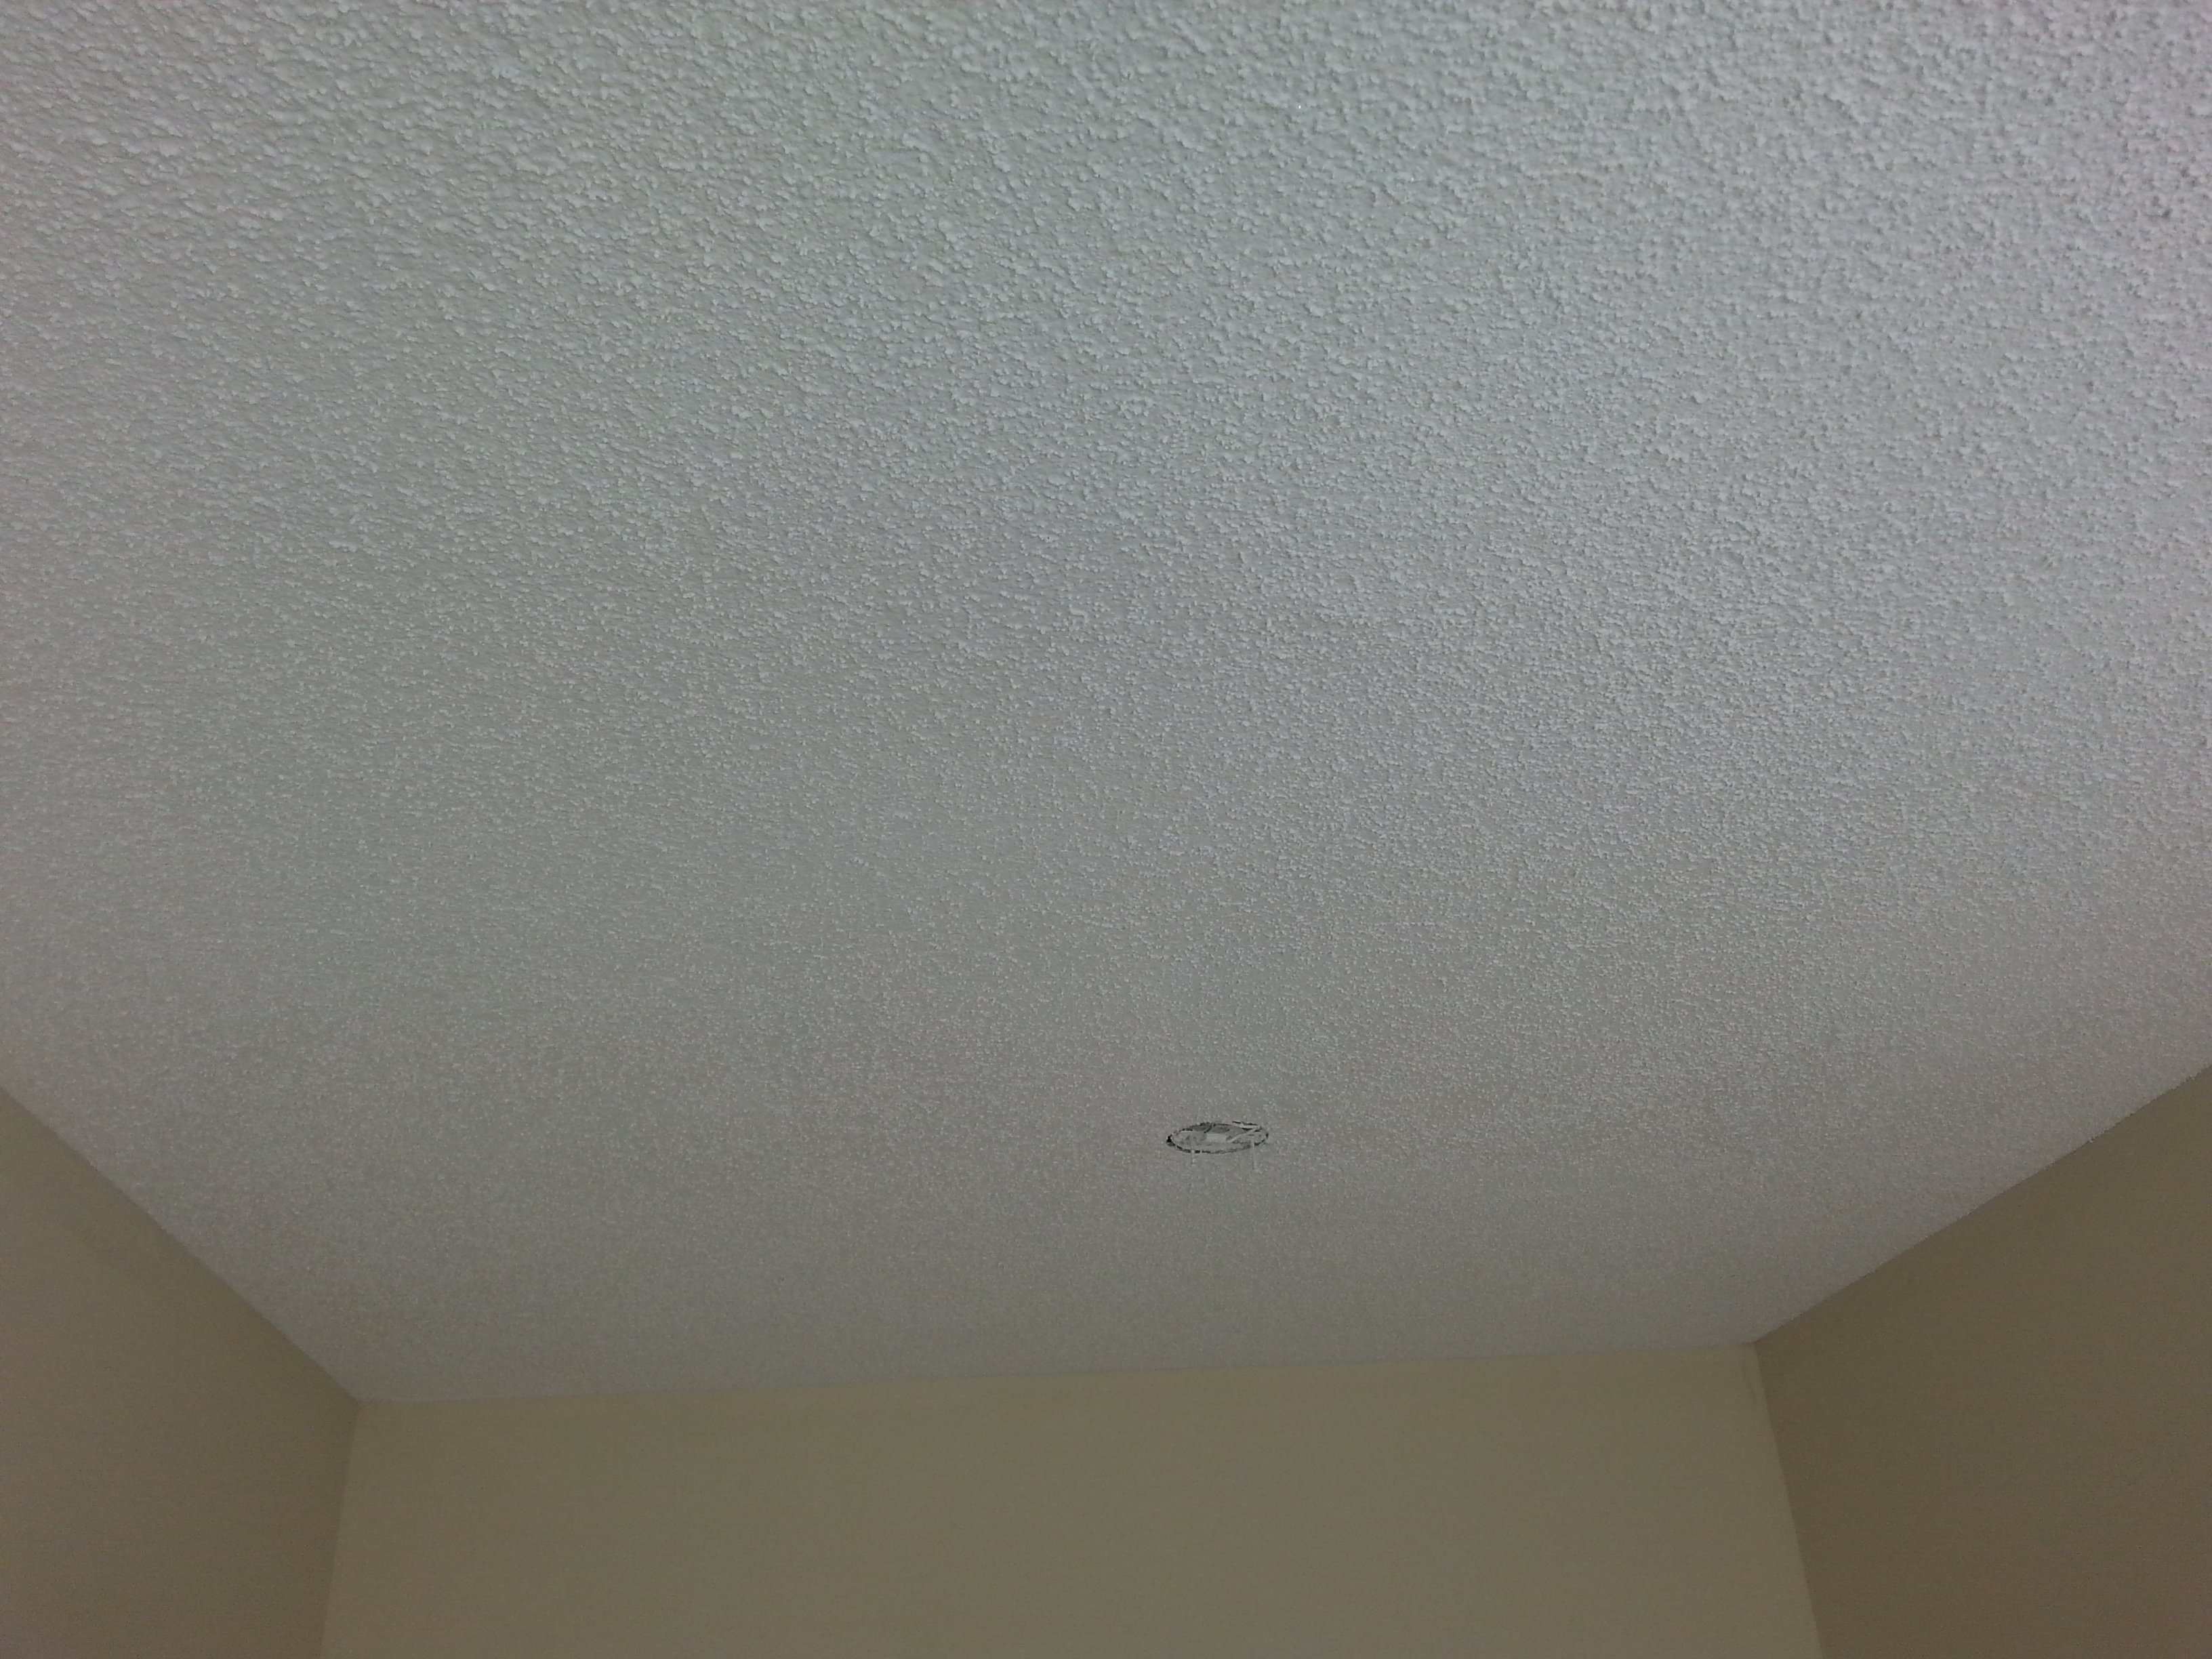 Bathroom ceiling mildew - Ceiling Stains